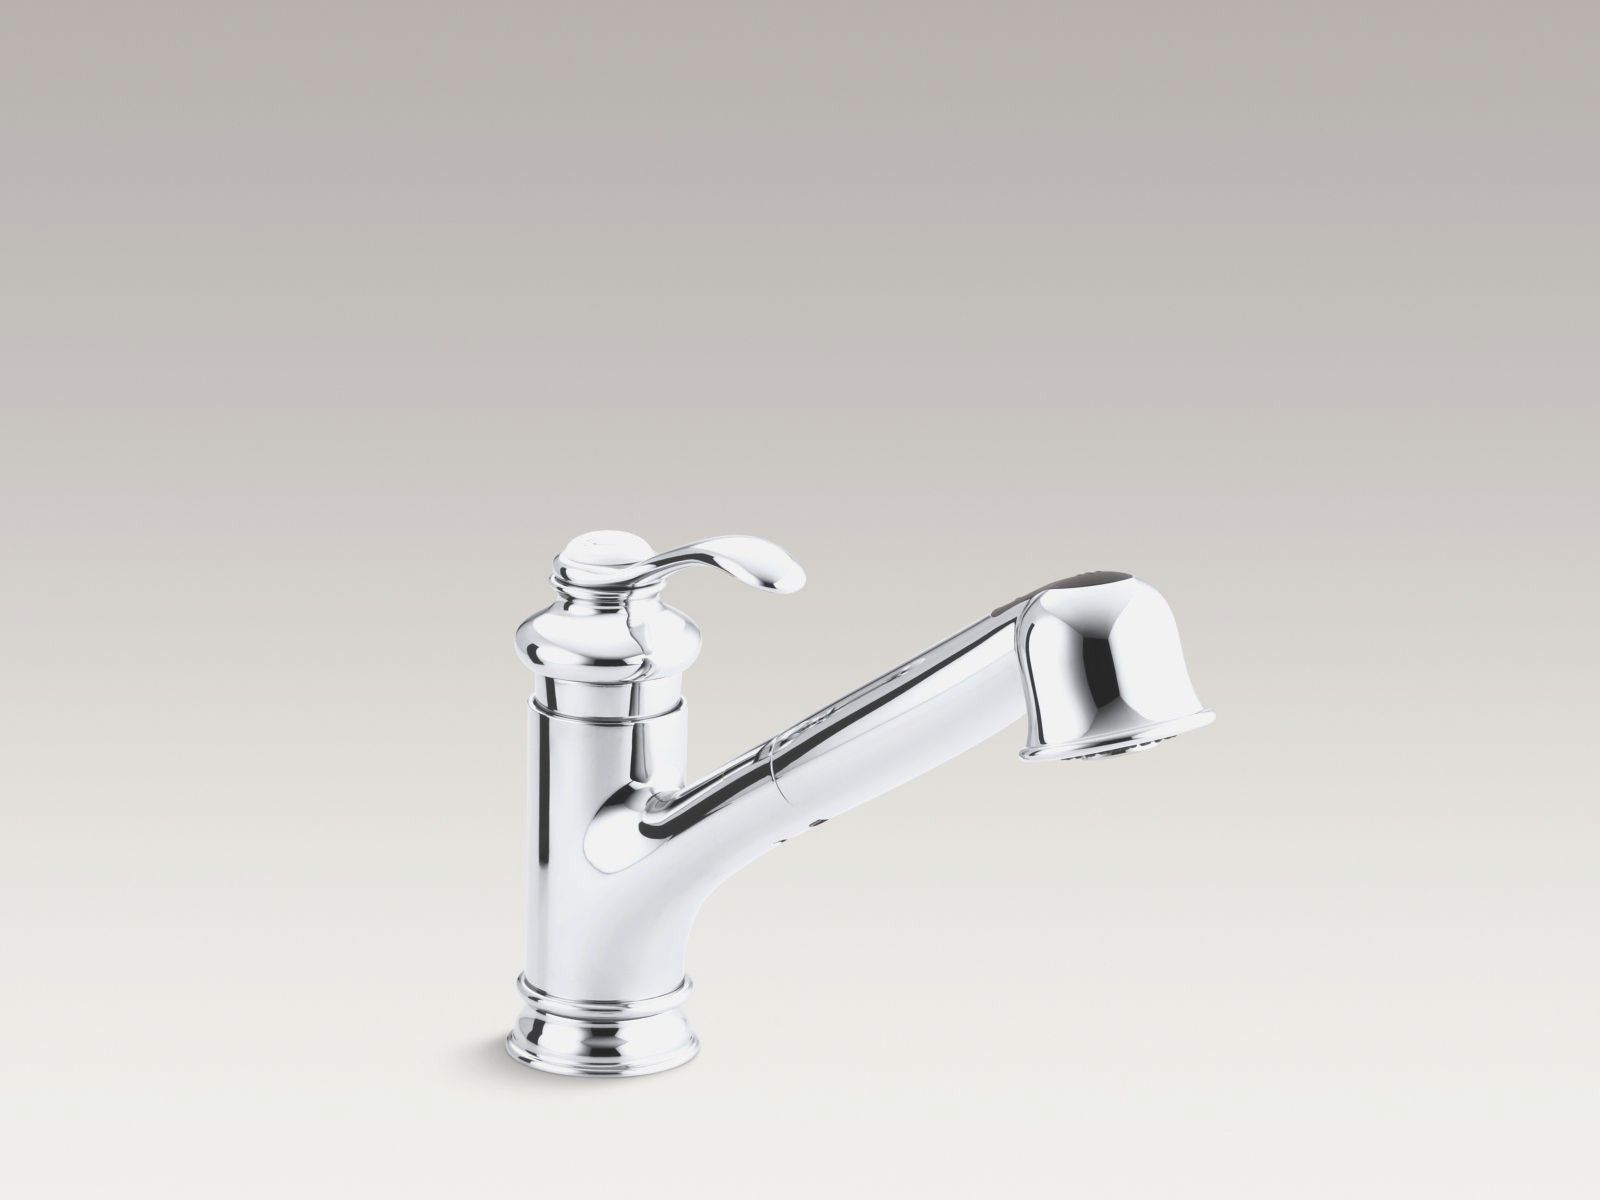 Kohler Pull Out Kitchen Faucet Repair Making Cabinet Doors Spray  Wow Blog